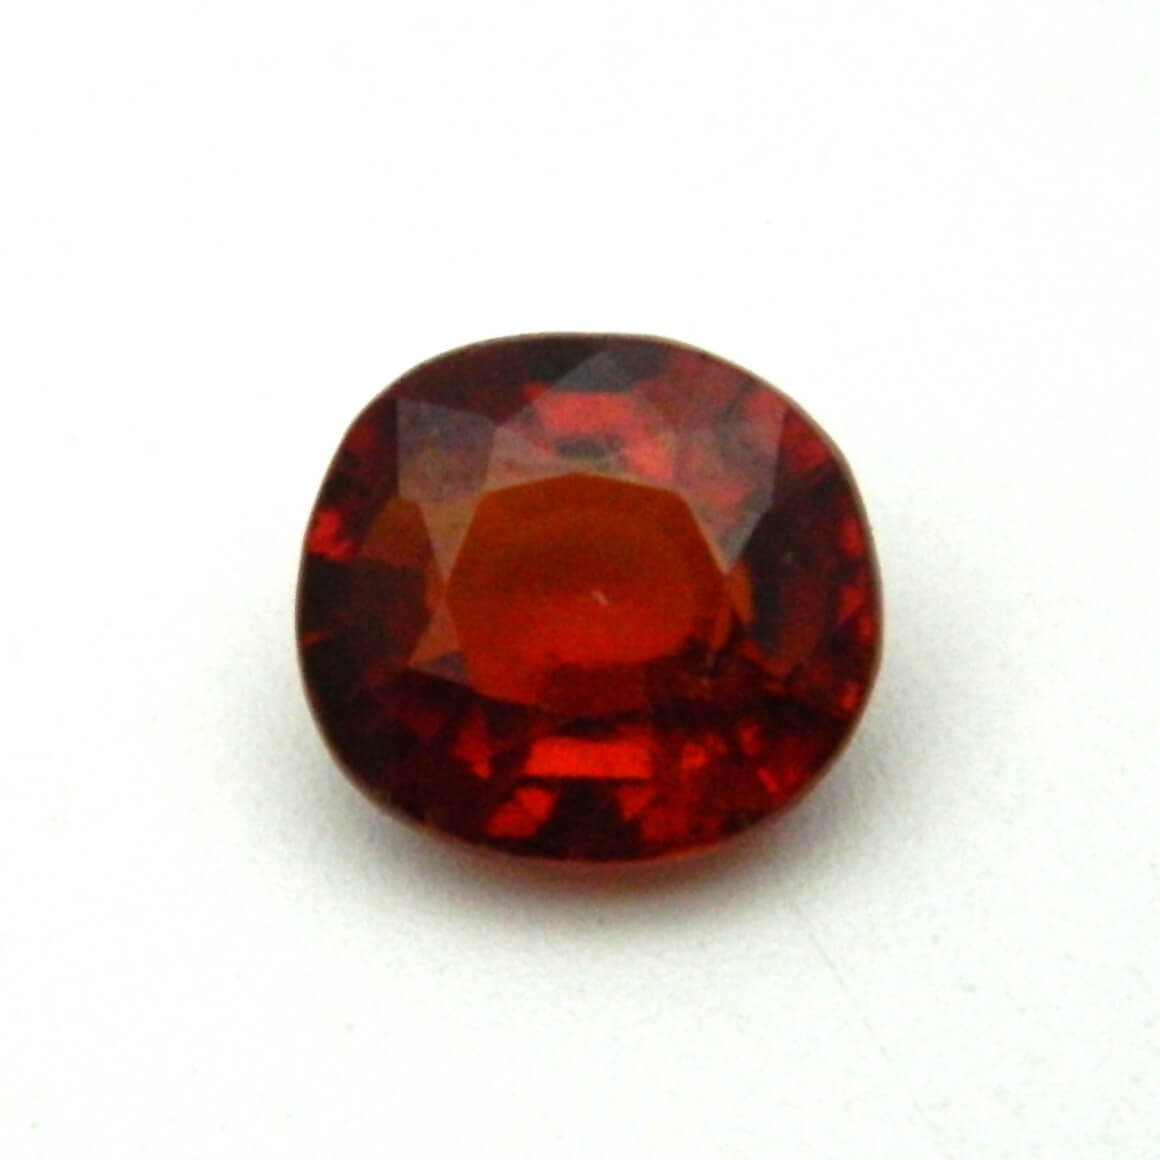 6.12 Carat/ 6.79 Ratti Natural Ceylon Hessonite Garnet (Gomed) Gemstone